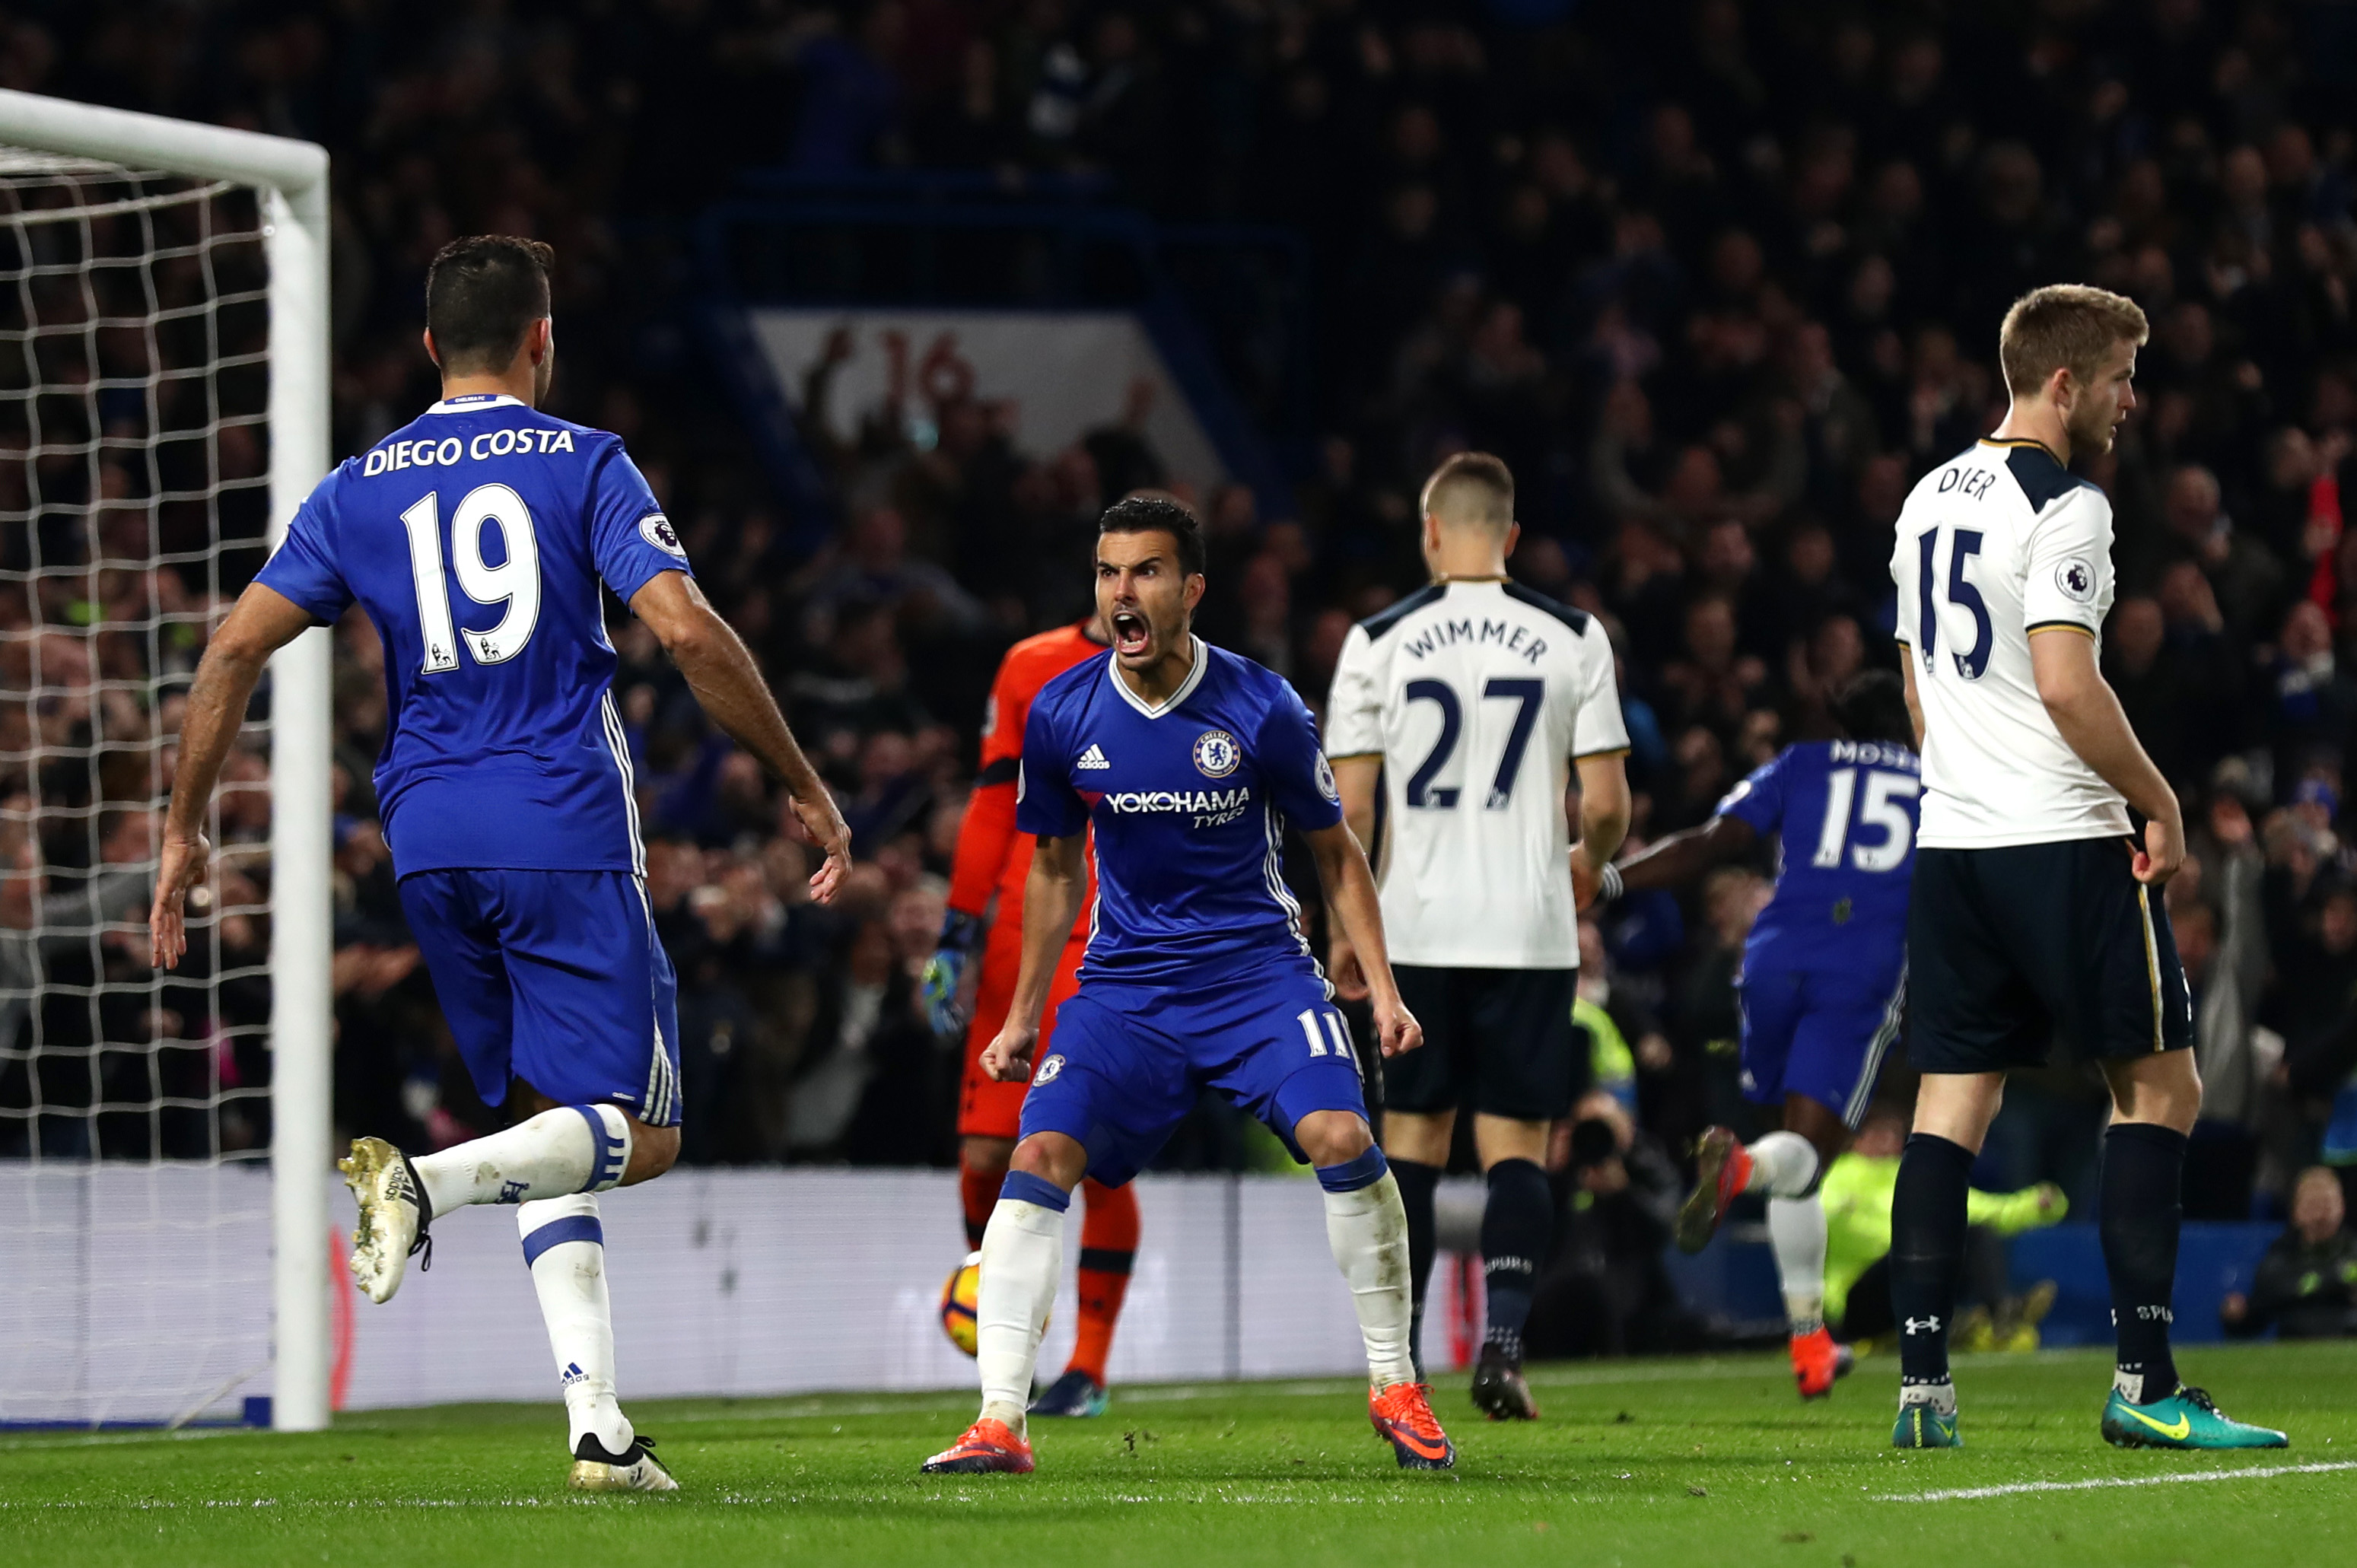 LONDON, ENGLAND - NOVEMBER 26: Pedro (C) of Chelsea celebrates scoring his team's first goal with his team mate Diego Costa (L) during the Premier League match between Chelsea and Tottenham Hotspur at Stamford Bridge on November 26, 2016 in London, England. (Photo by Clive Rose/Getty Images)